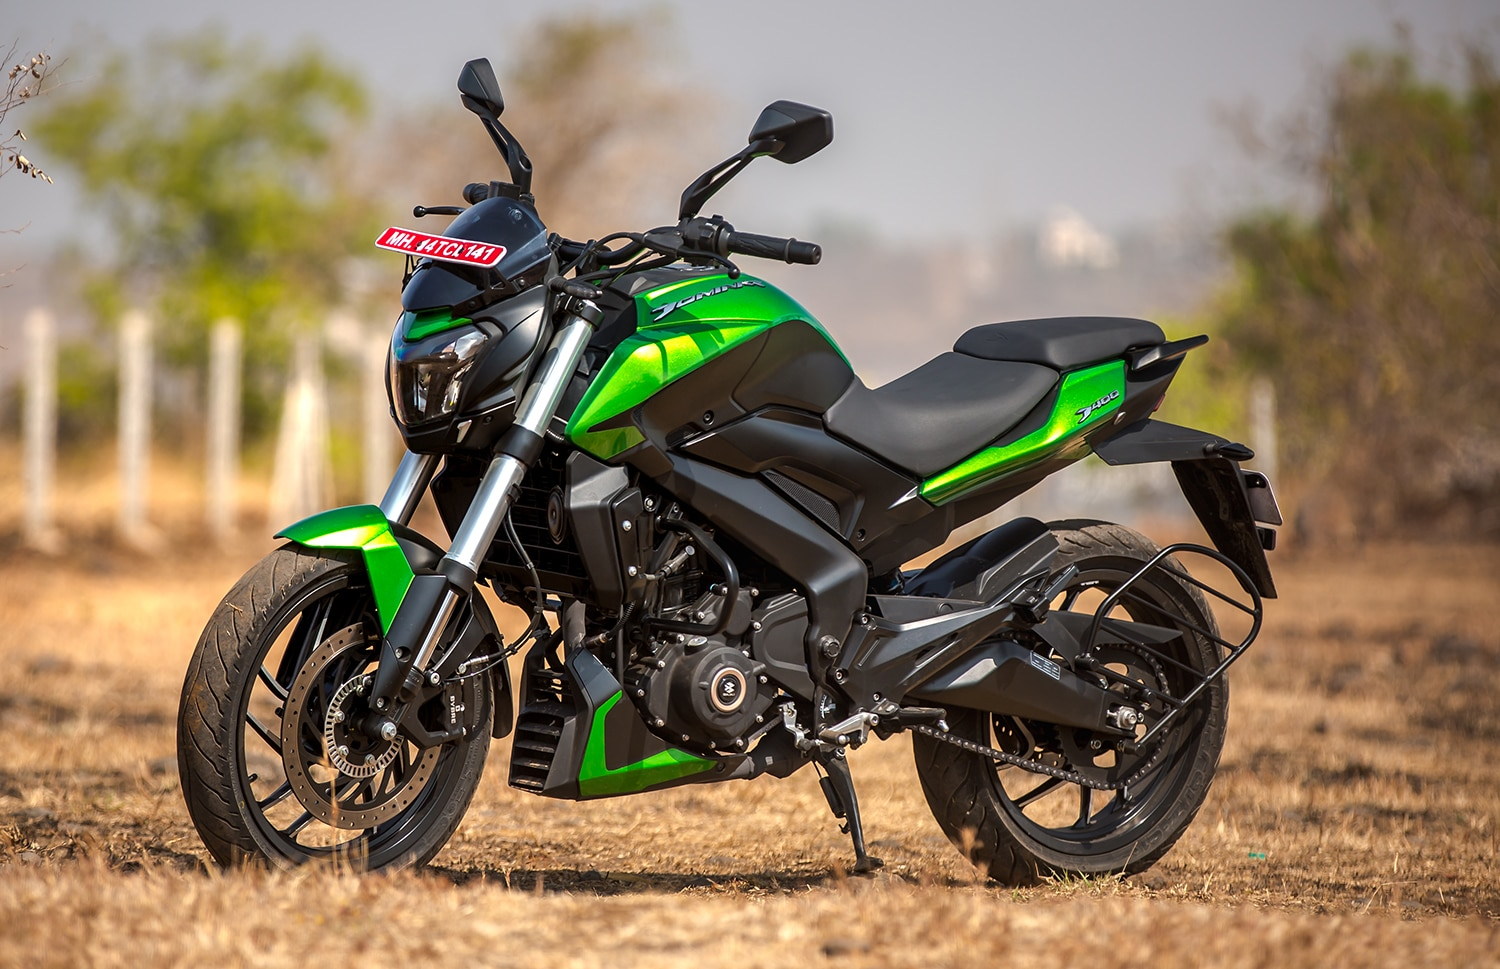 2019 Bajaj Dominar 400 Launched In India